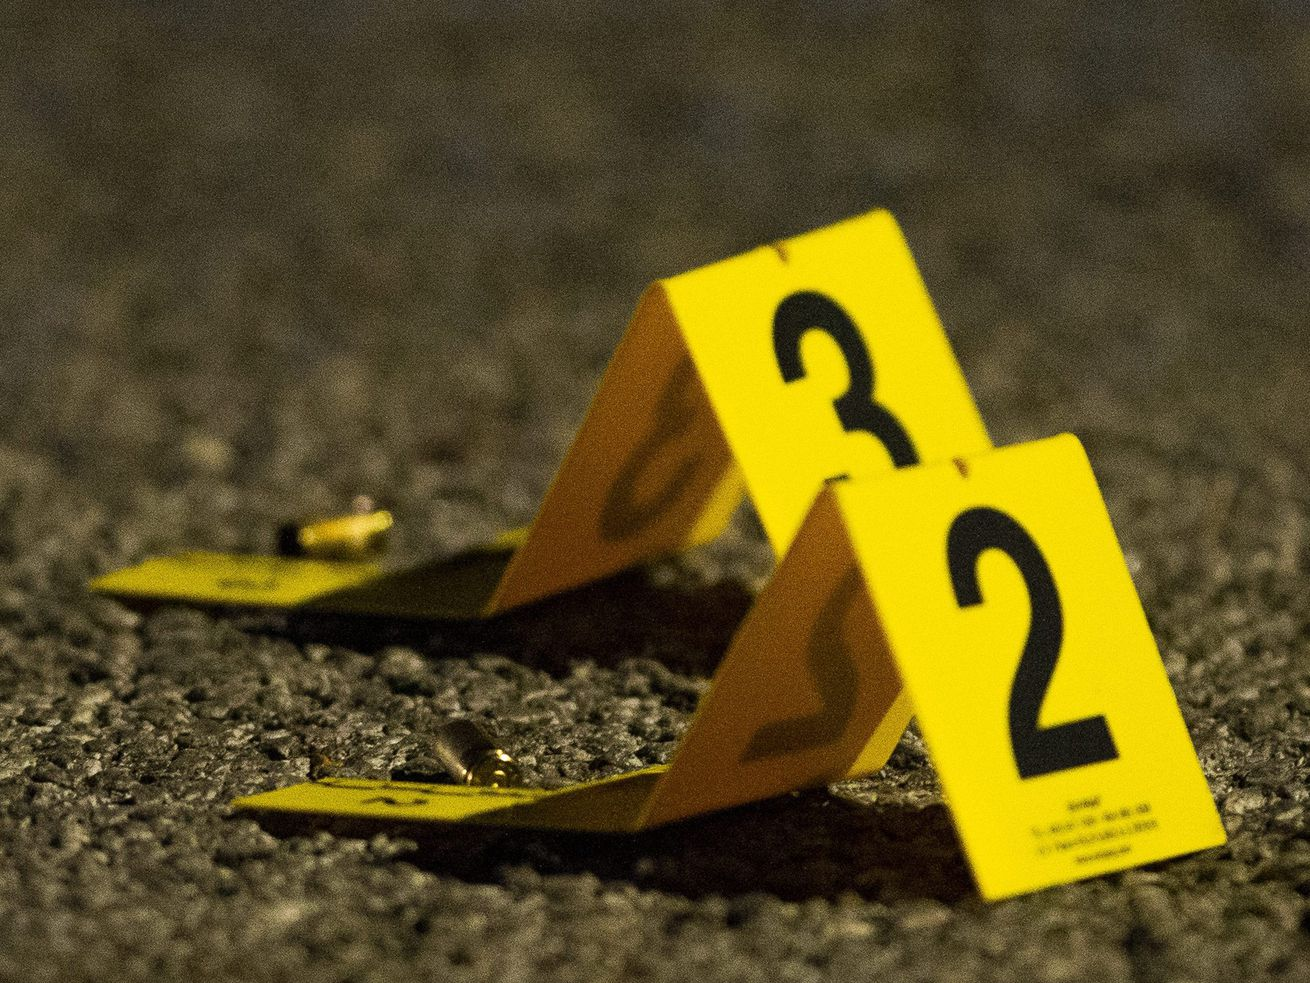 A man was fatally shot Oct. 25, 2020, in the 1900 block of South St. Louis Avenue.